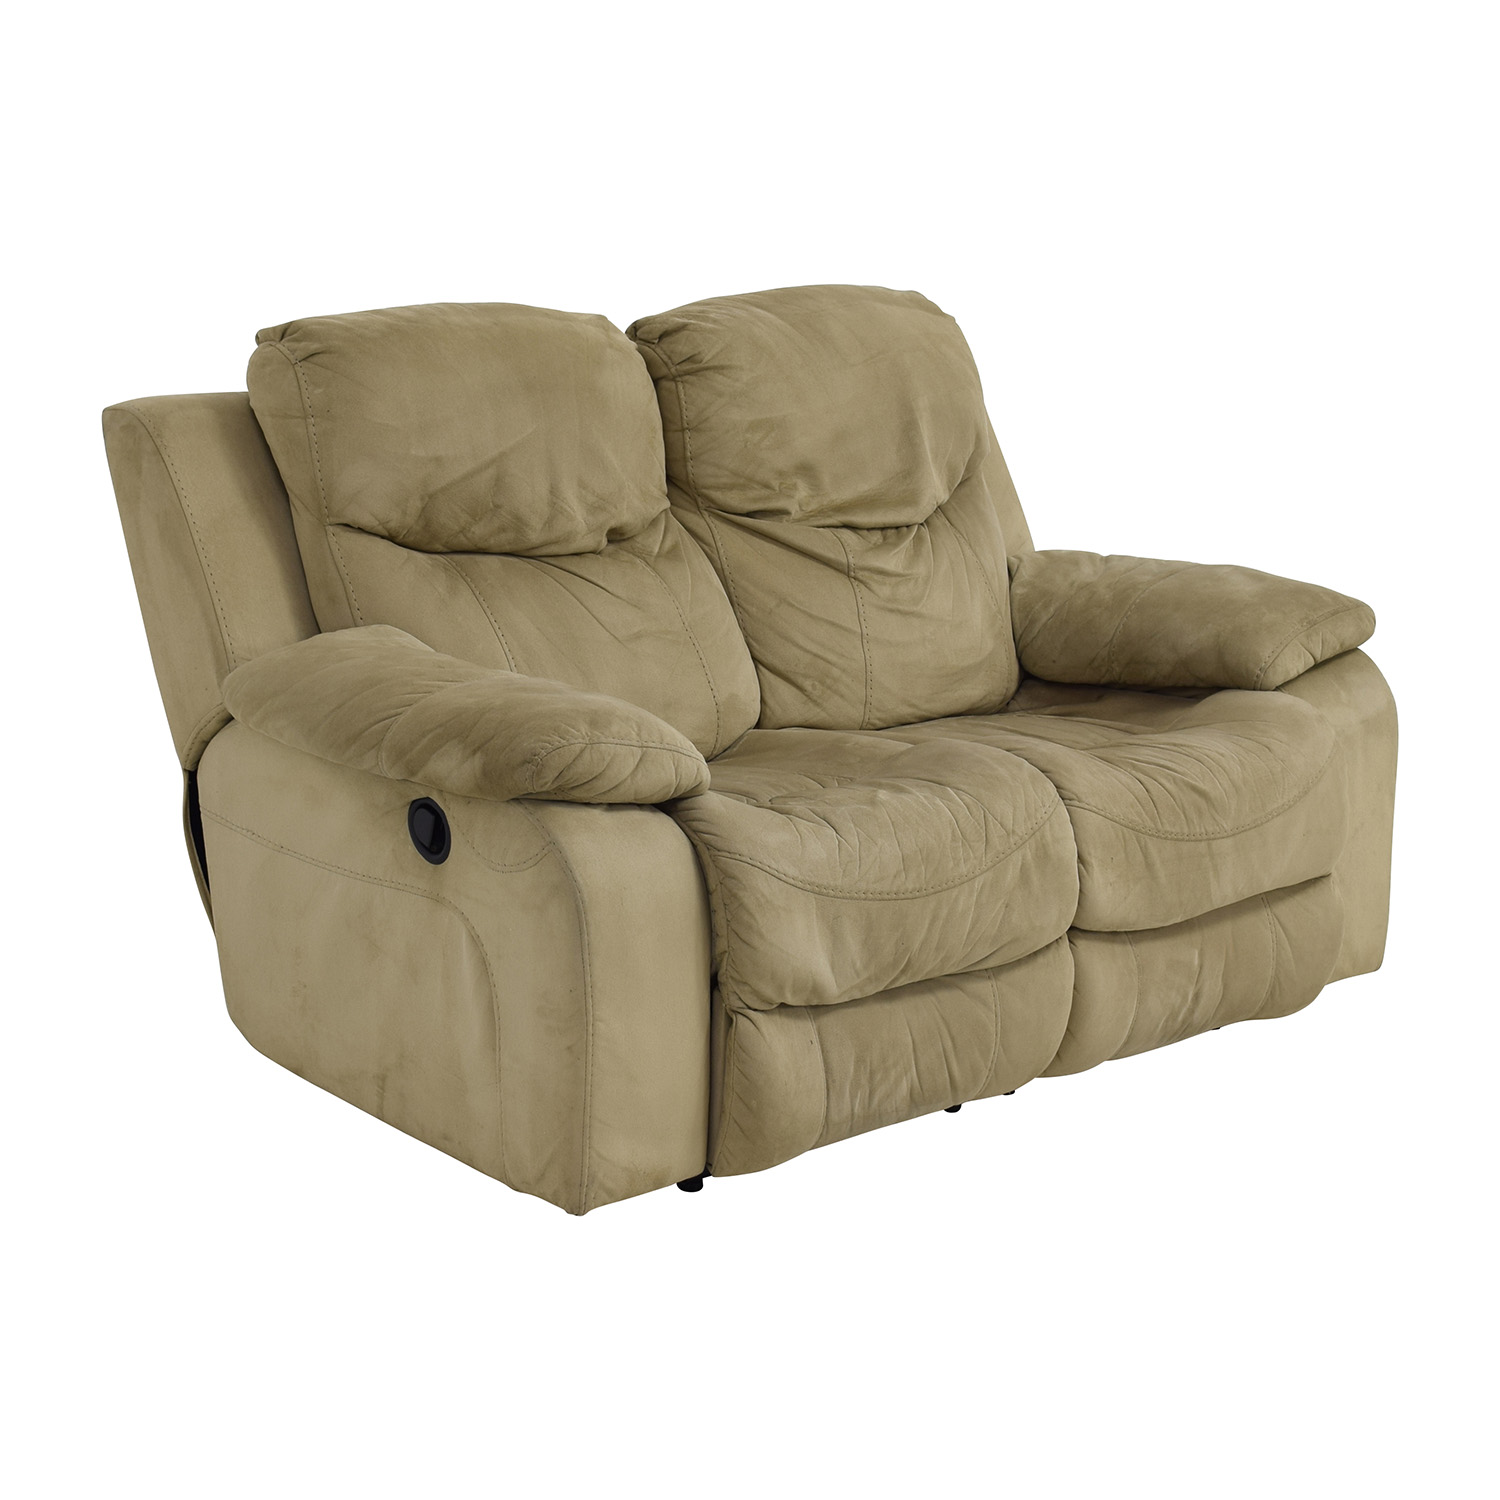 75% OFF Bob s Furniture Bob s Furniture Grey Dual